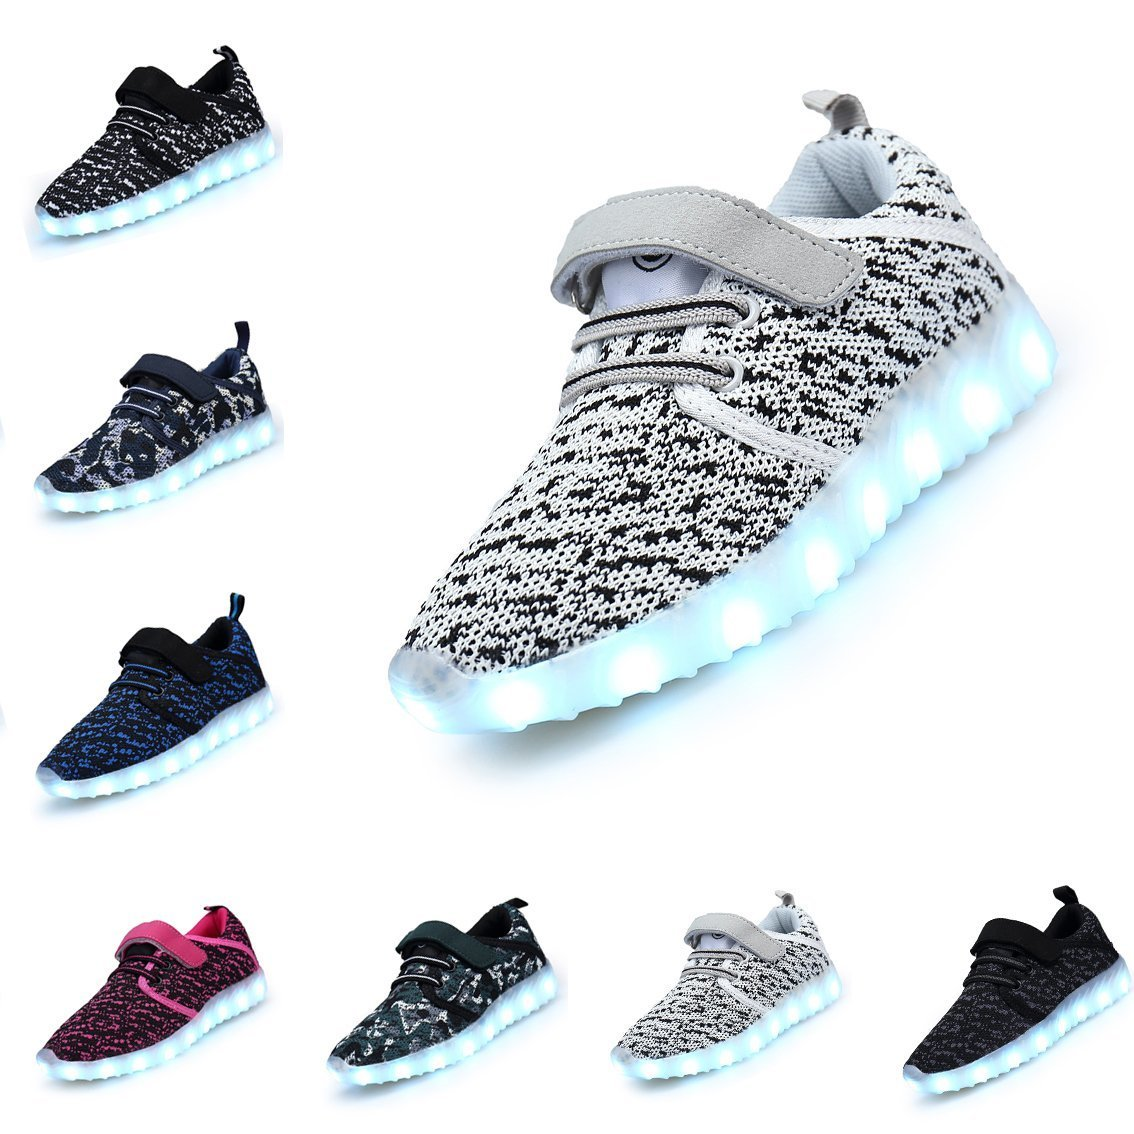 Motaierly Kids Boys Girls Breathable LED Light Up Shoes Flashing Sneakers